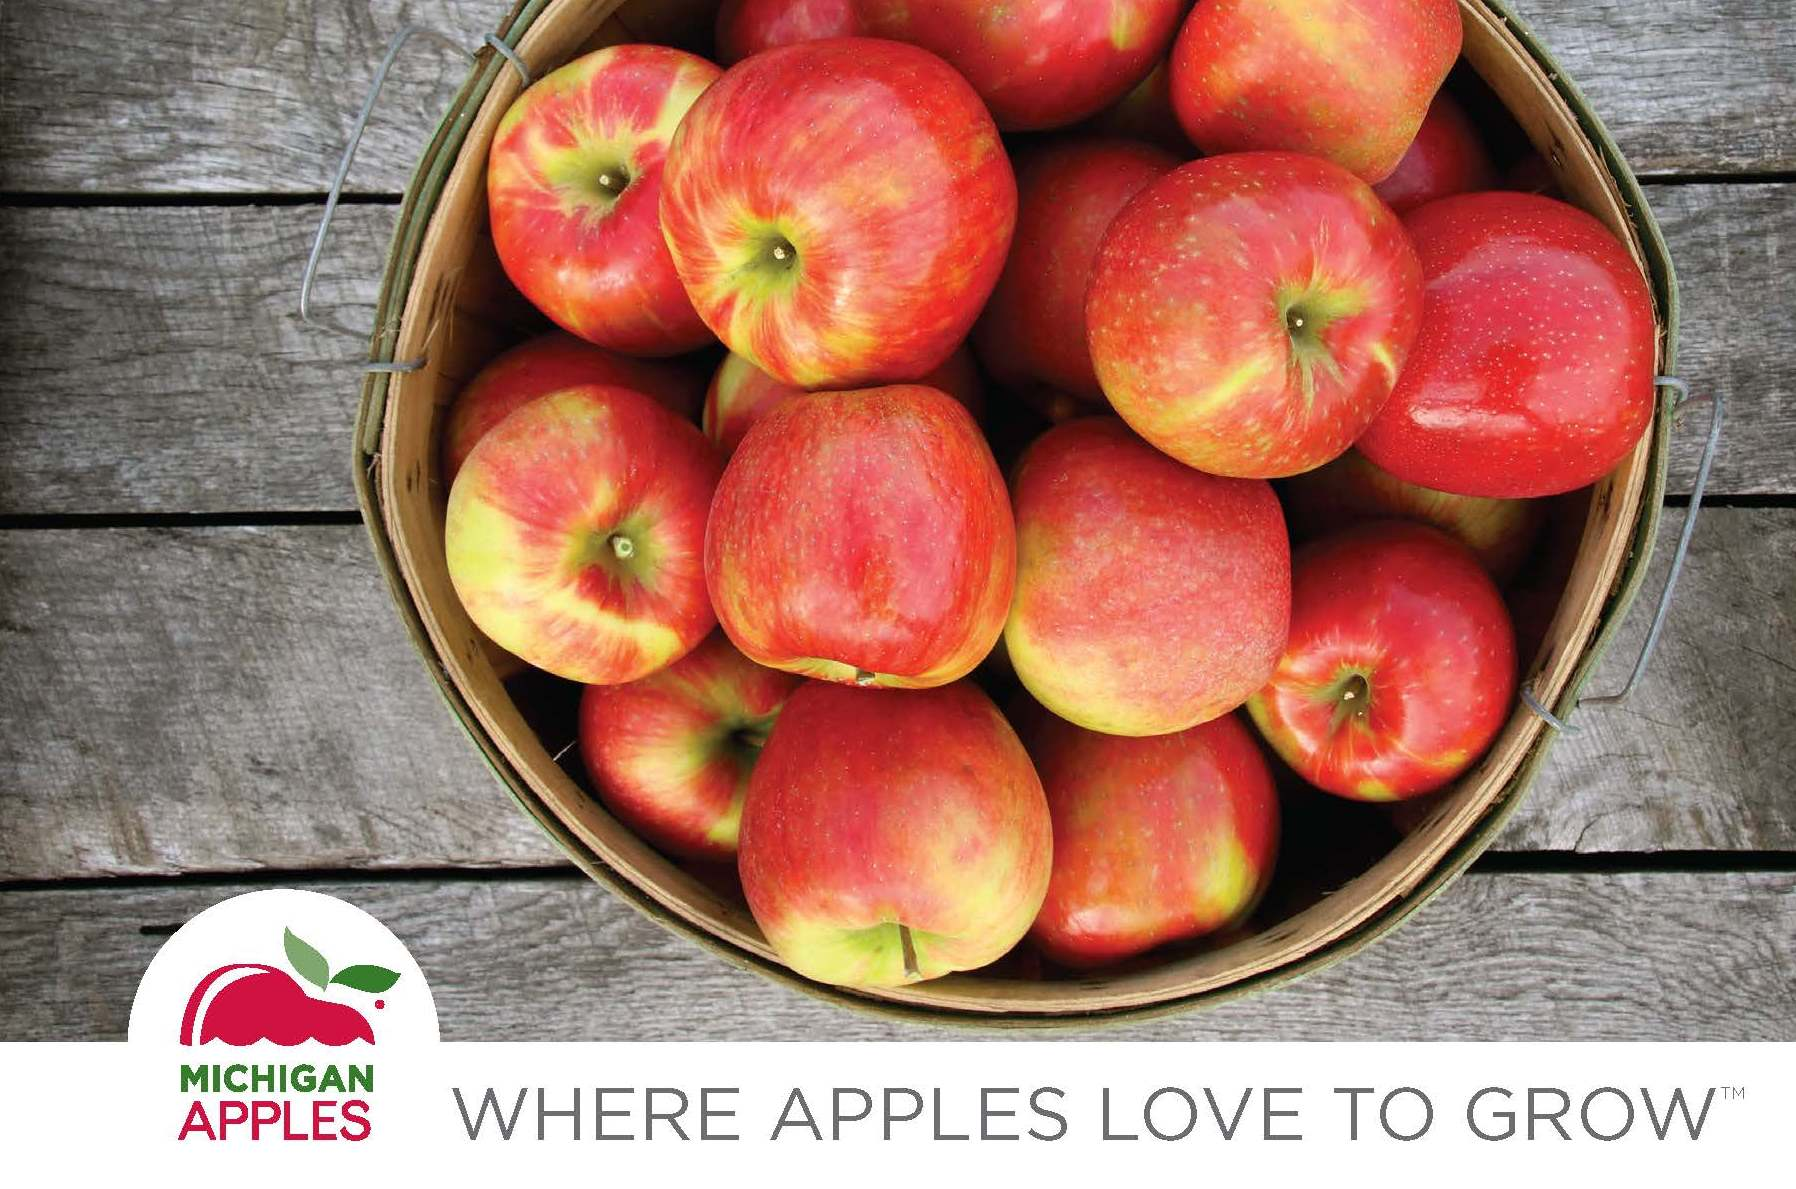 Where Apples Love to Grow